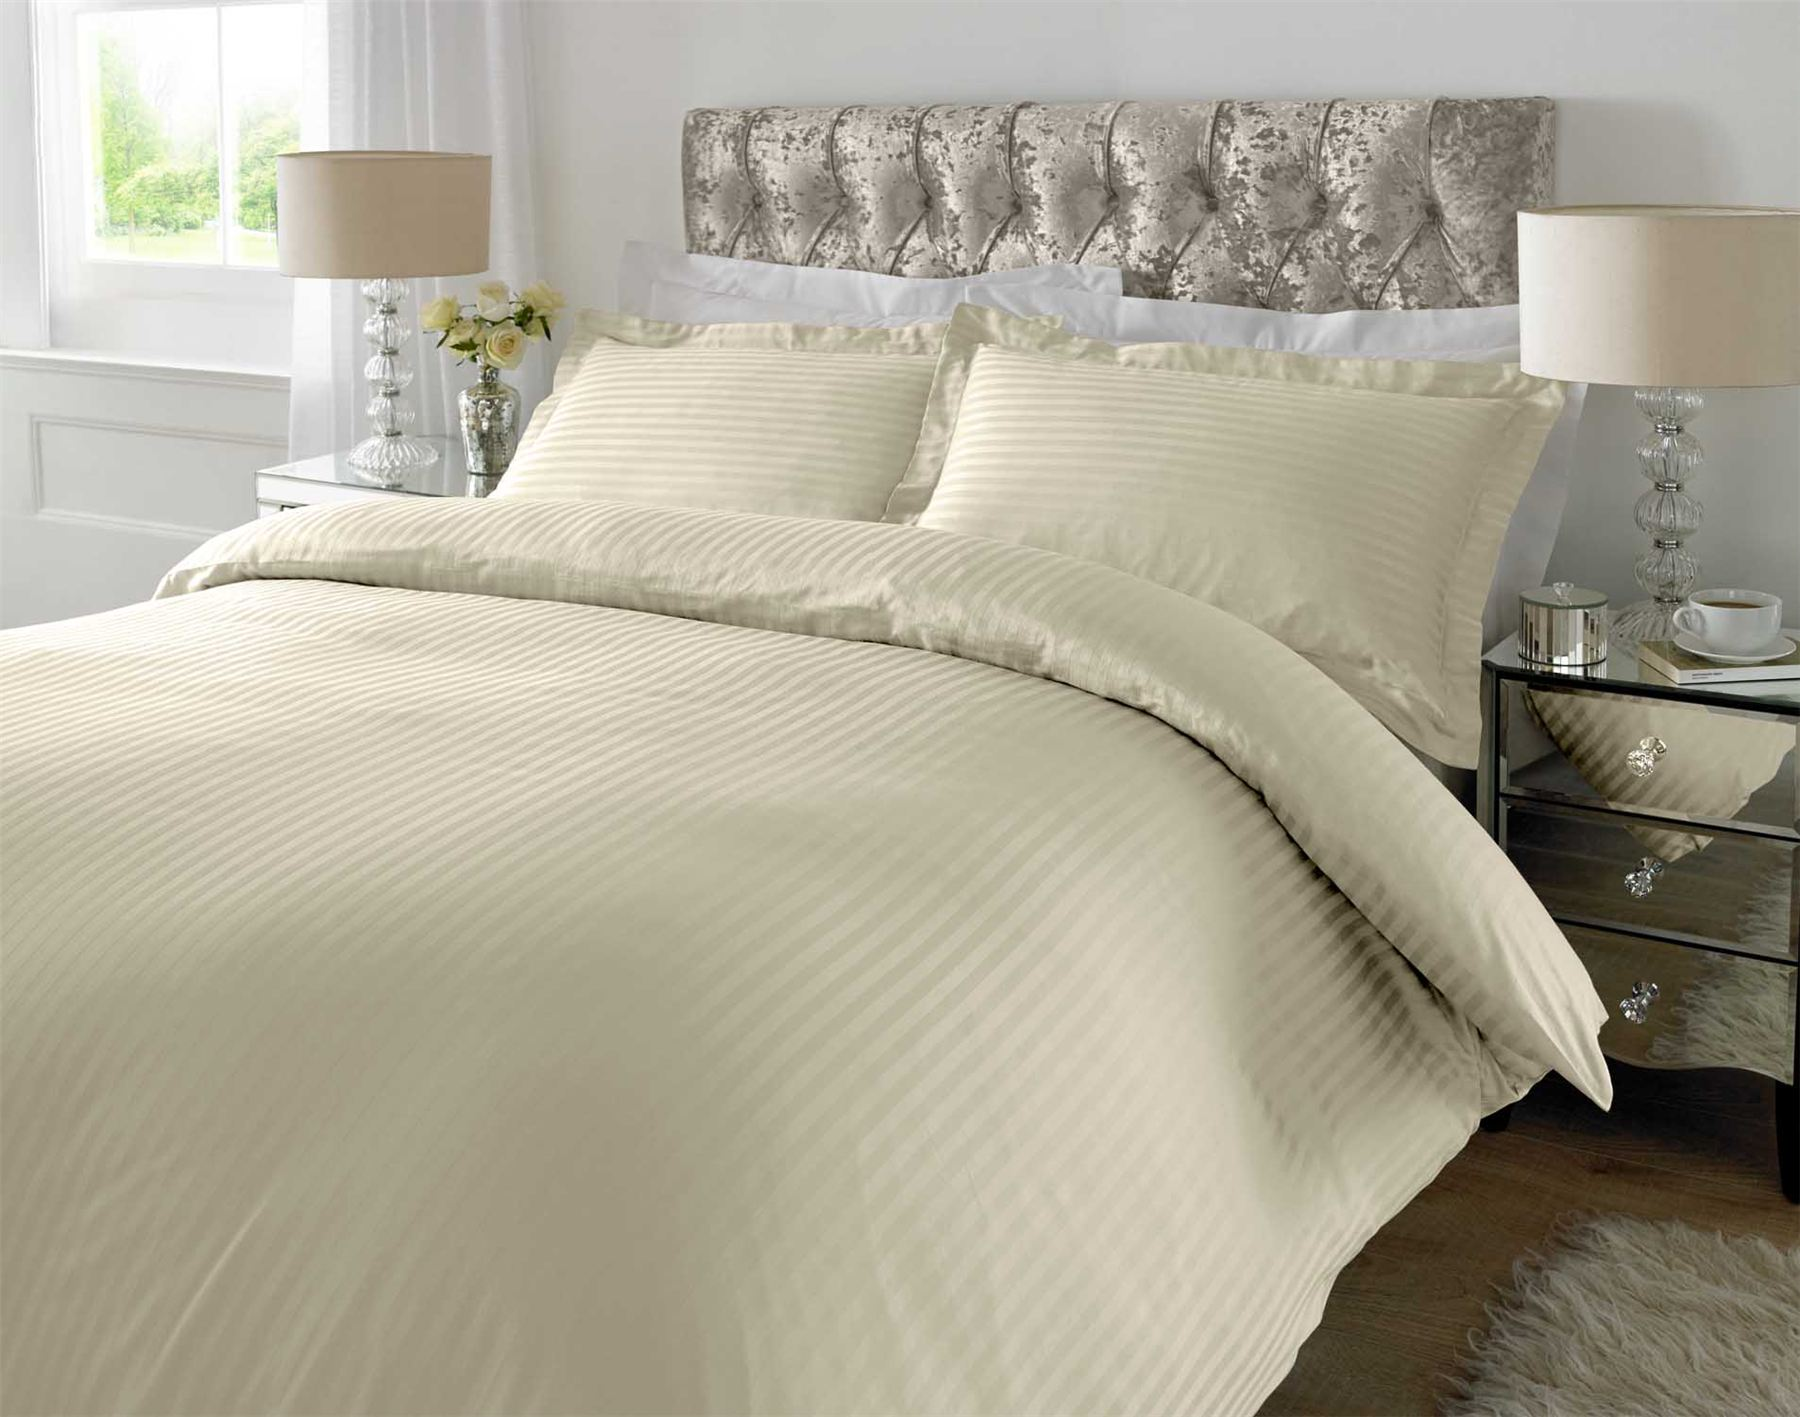 Duvet covers are arguably just as important as pillow cases and sheets when it comes to making your bed look complete. Not only do these bedroom accessories make the beds look beautiful, but they protect the duvet underneath from pet hair, stains, and tears.